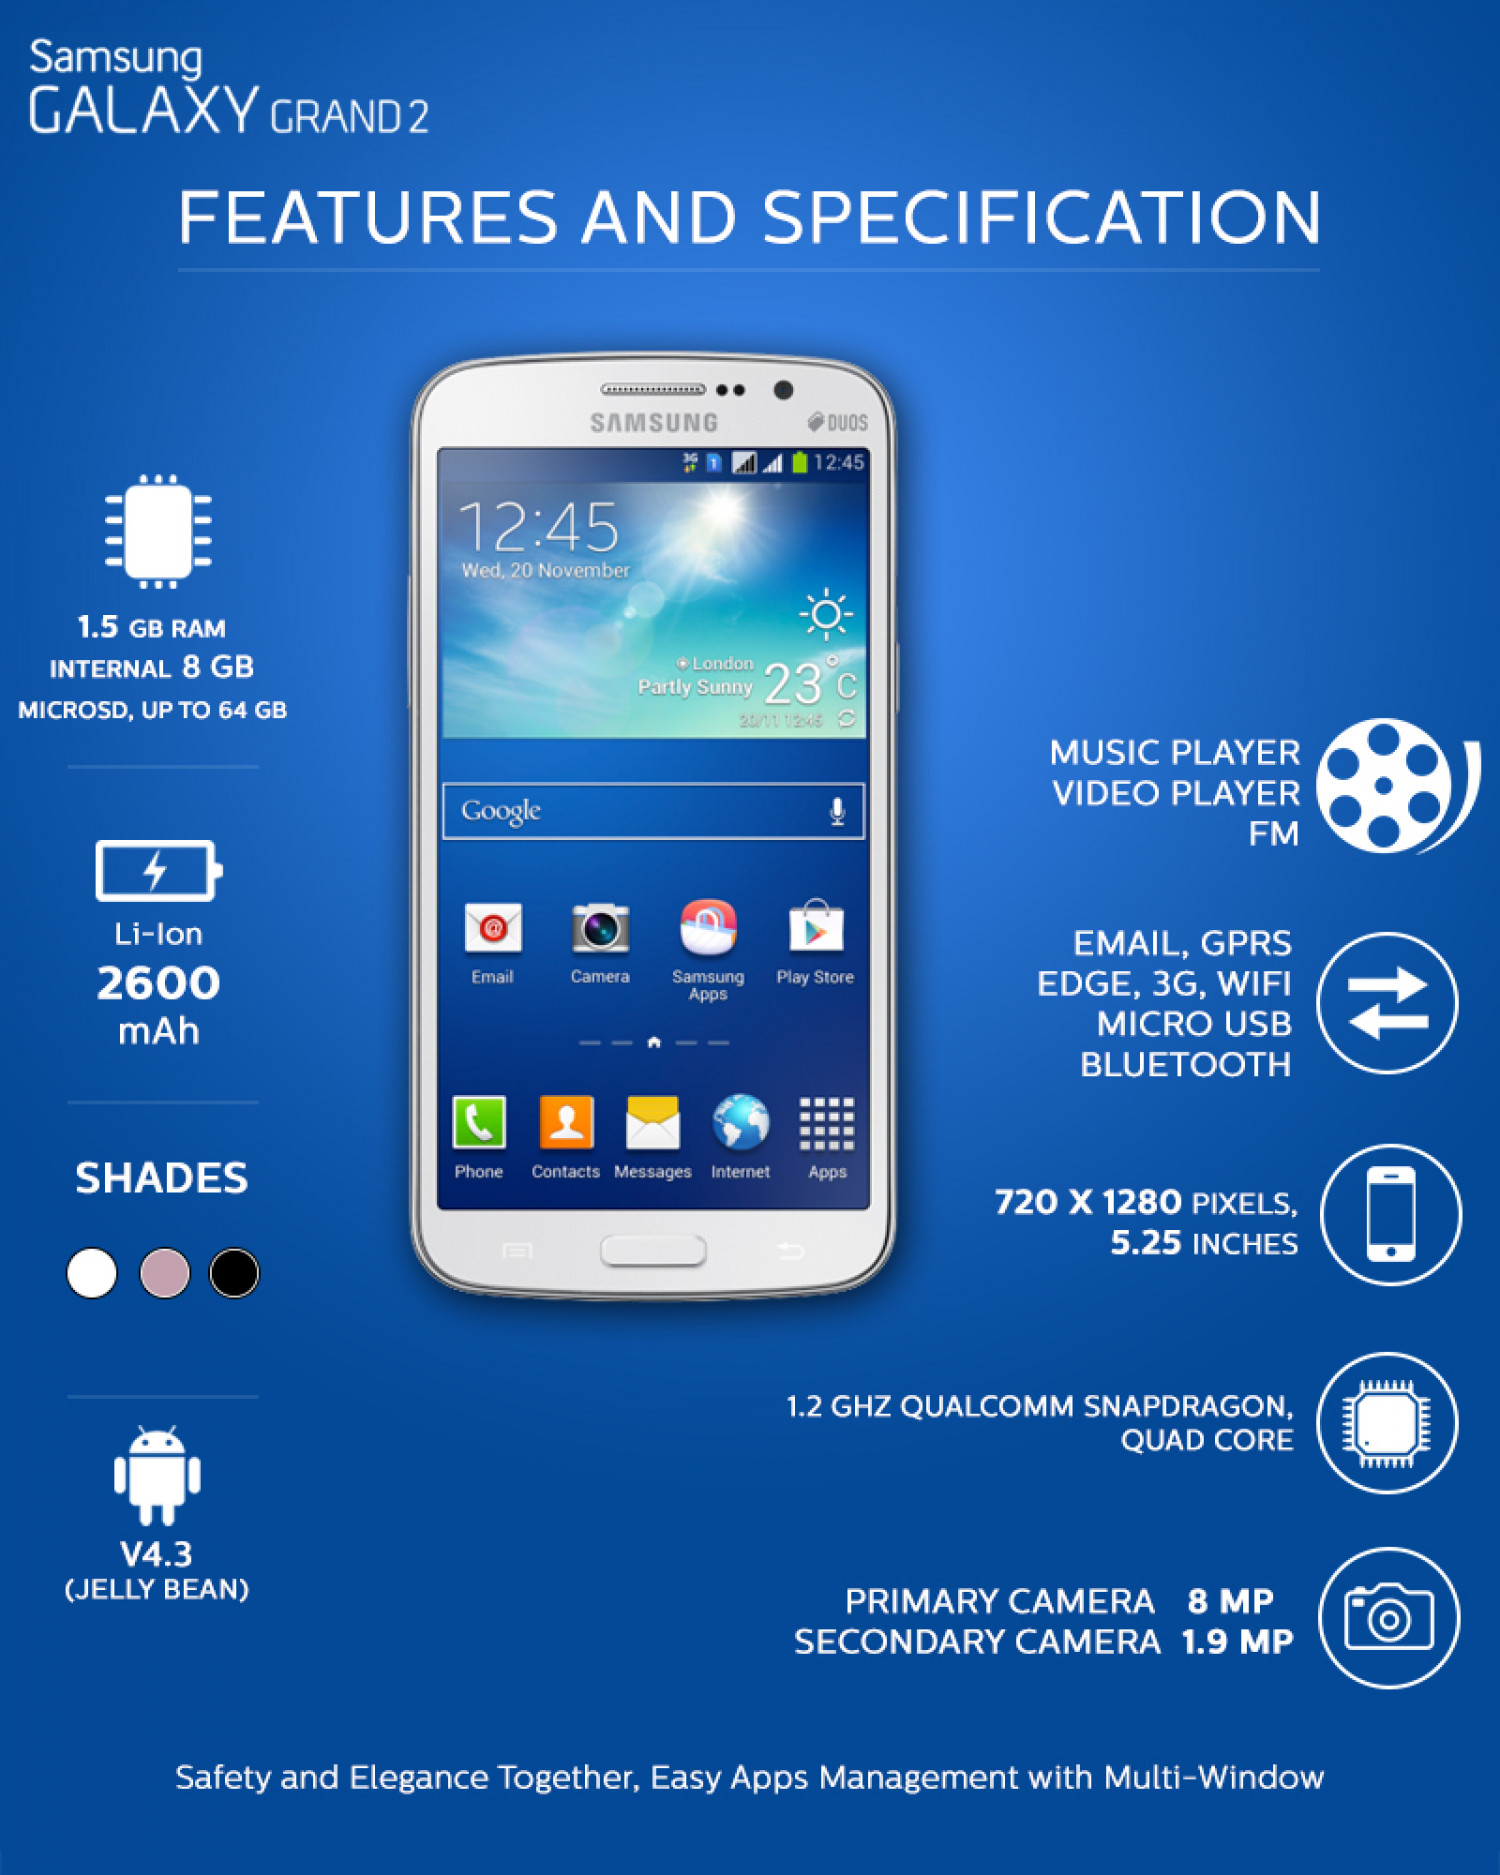 Samsung Galaxy Grand 2 : Features and Specification Infographic